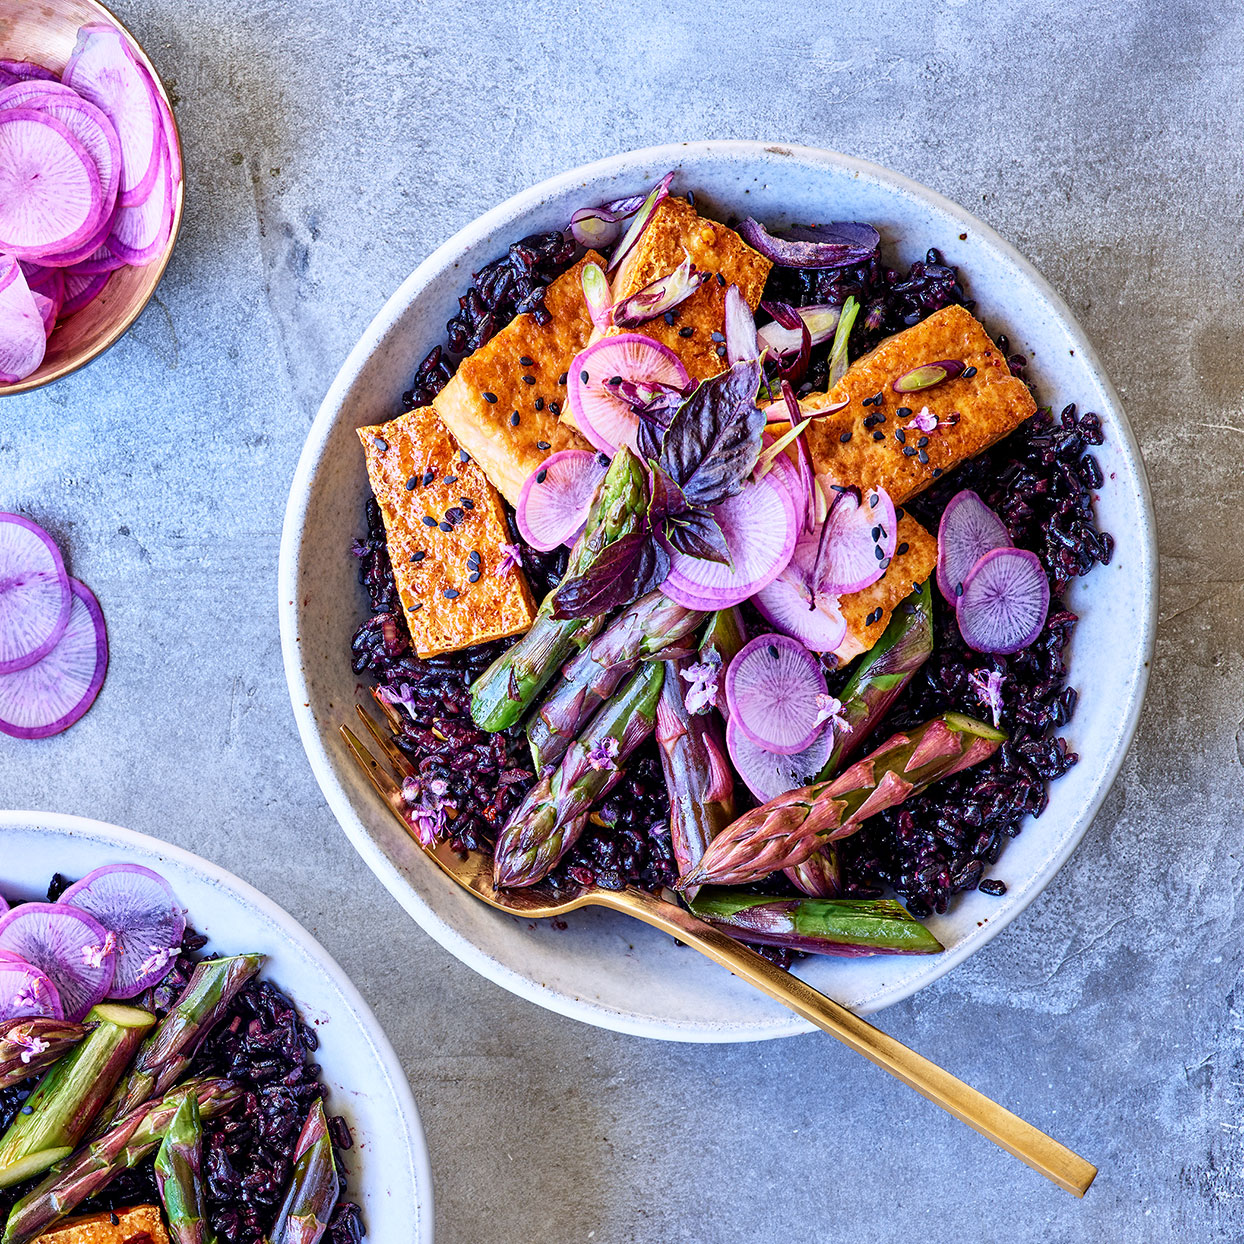 "Black beans, black rice and black sesame seeds all contain anthocyanins, potent antioxidant compounds that have been shown to reduce inflammation. So ""forbidden"" rice isn't just striking, it's also a serious nutrition upgrade. Simmering it in coconut milk adds rich aroma and flavor. Source: EatingWell Magazine, April 2020"